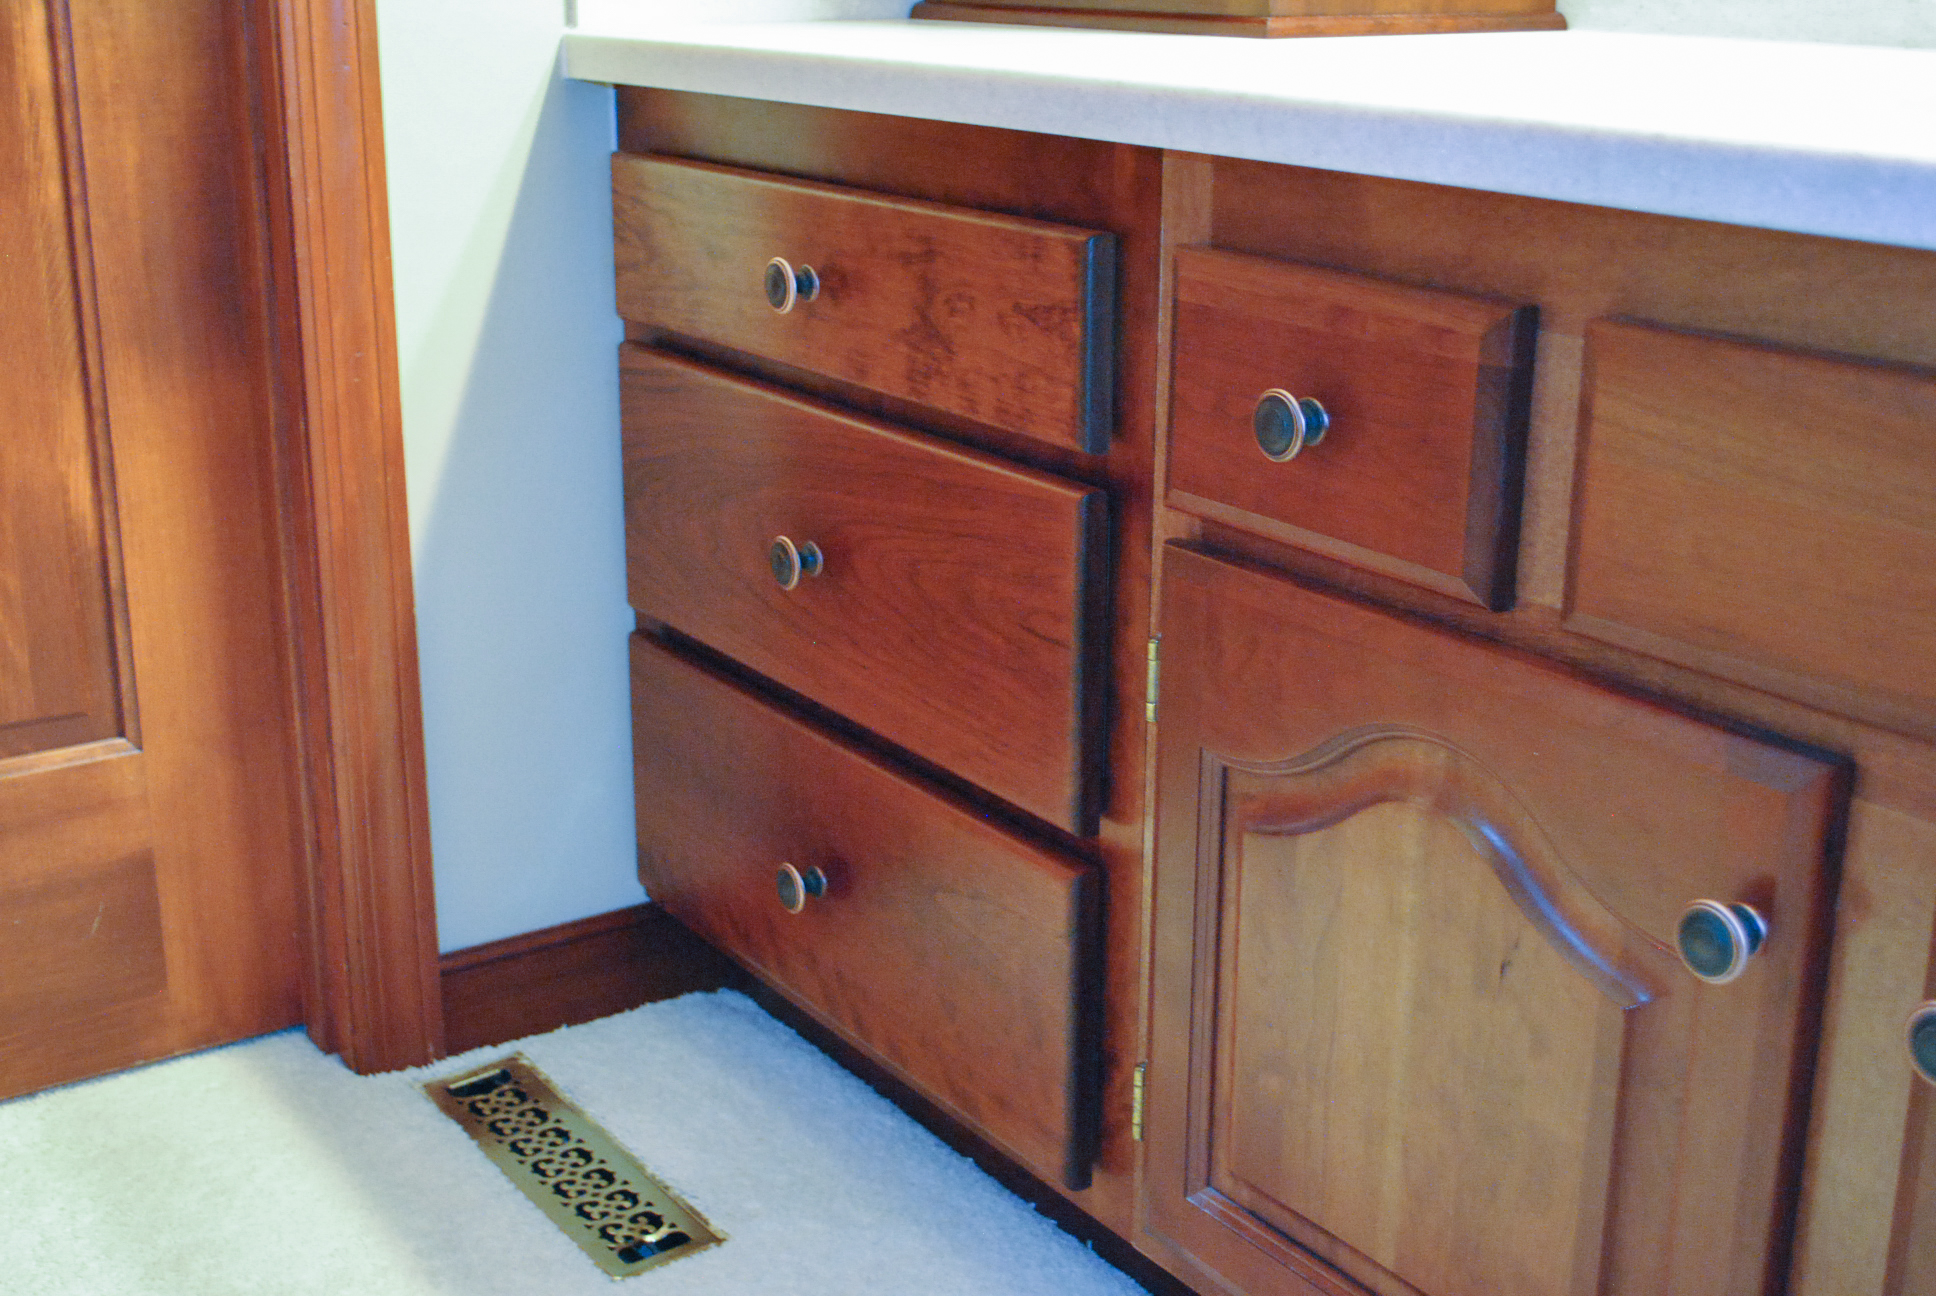 The drawer unit was stained and finished to match the existing cabinets.